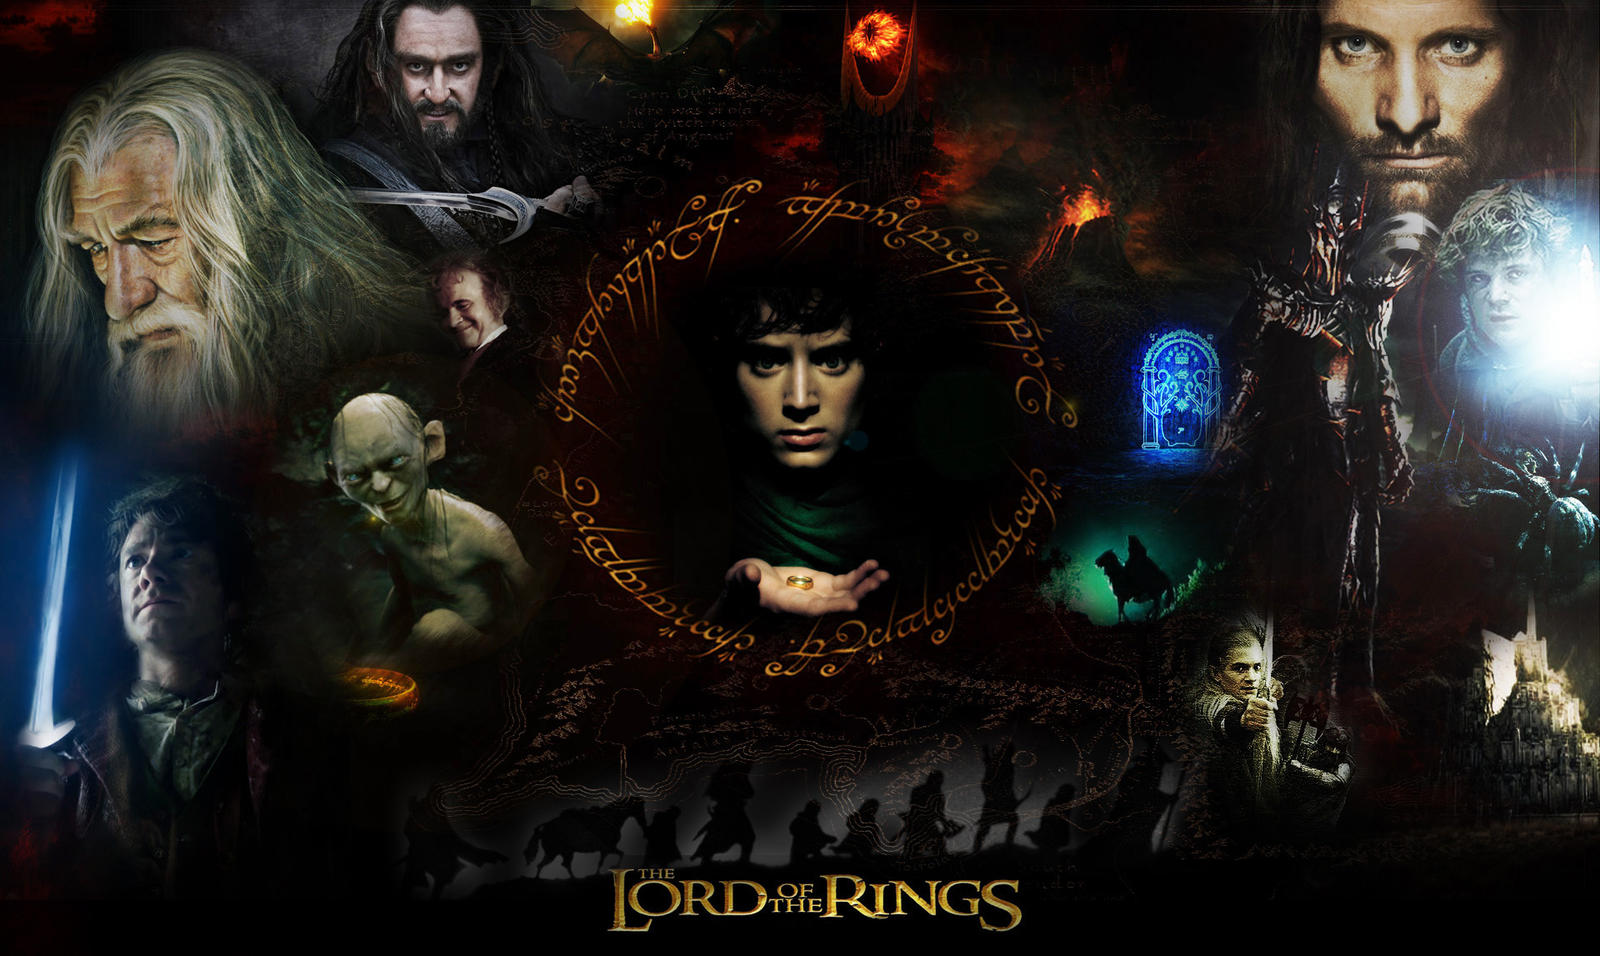 The Lord Of The Rings Wallpaper By Kyl El7 On Deviantart